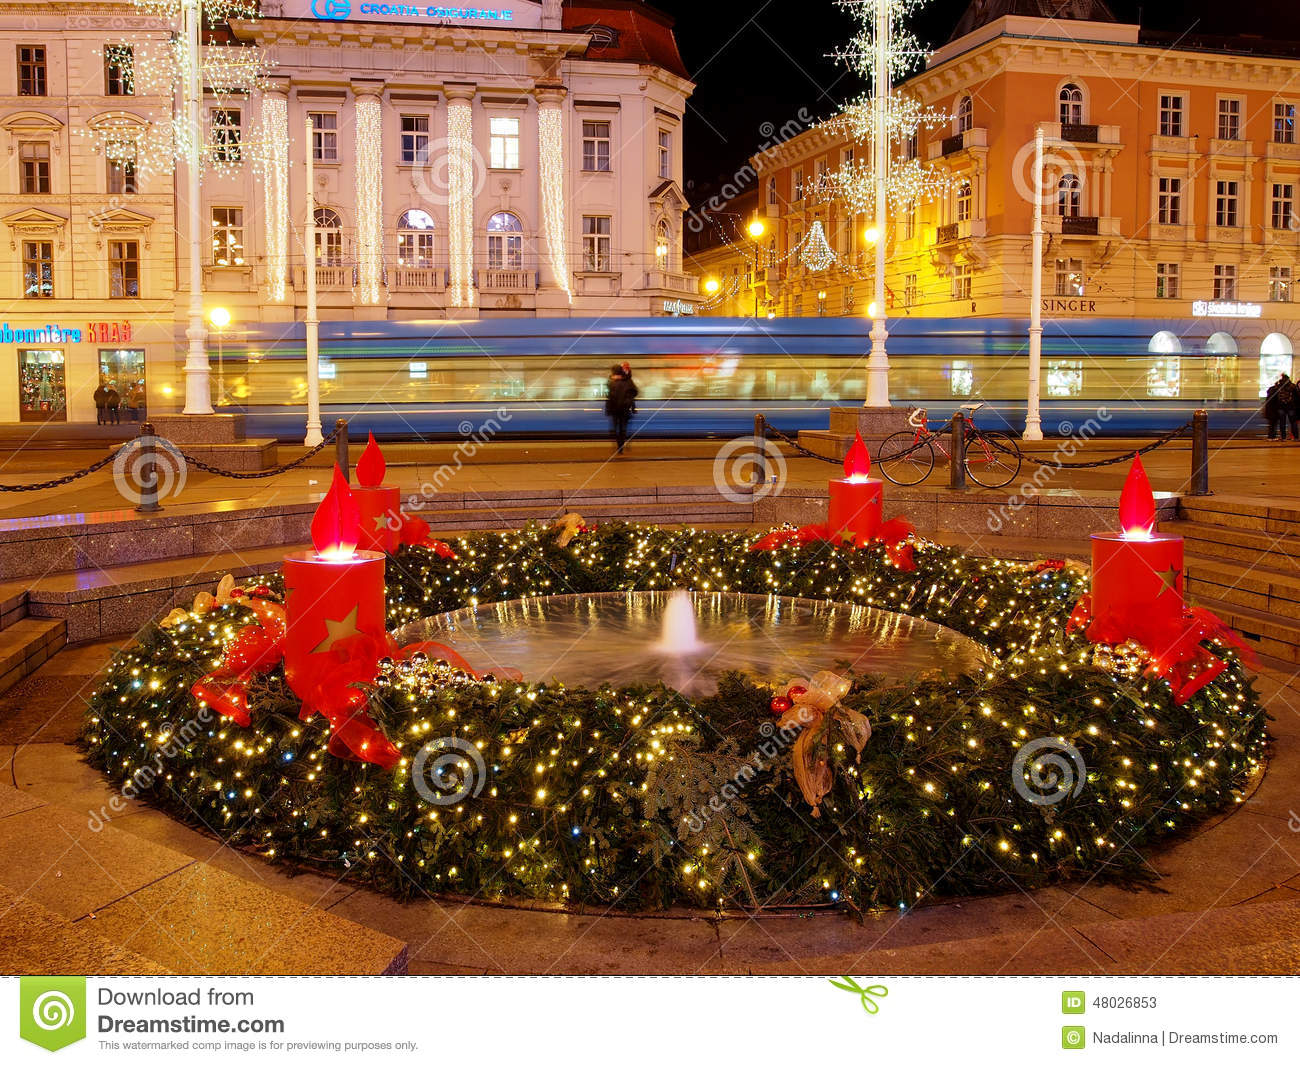 Advent Wreath Decorations Mandusevac Fountain At Night Decorated With Advent Wreath